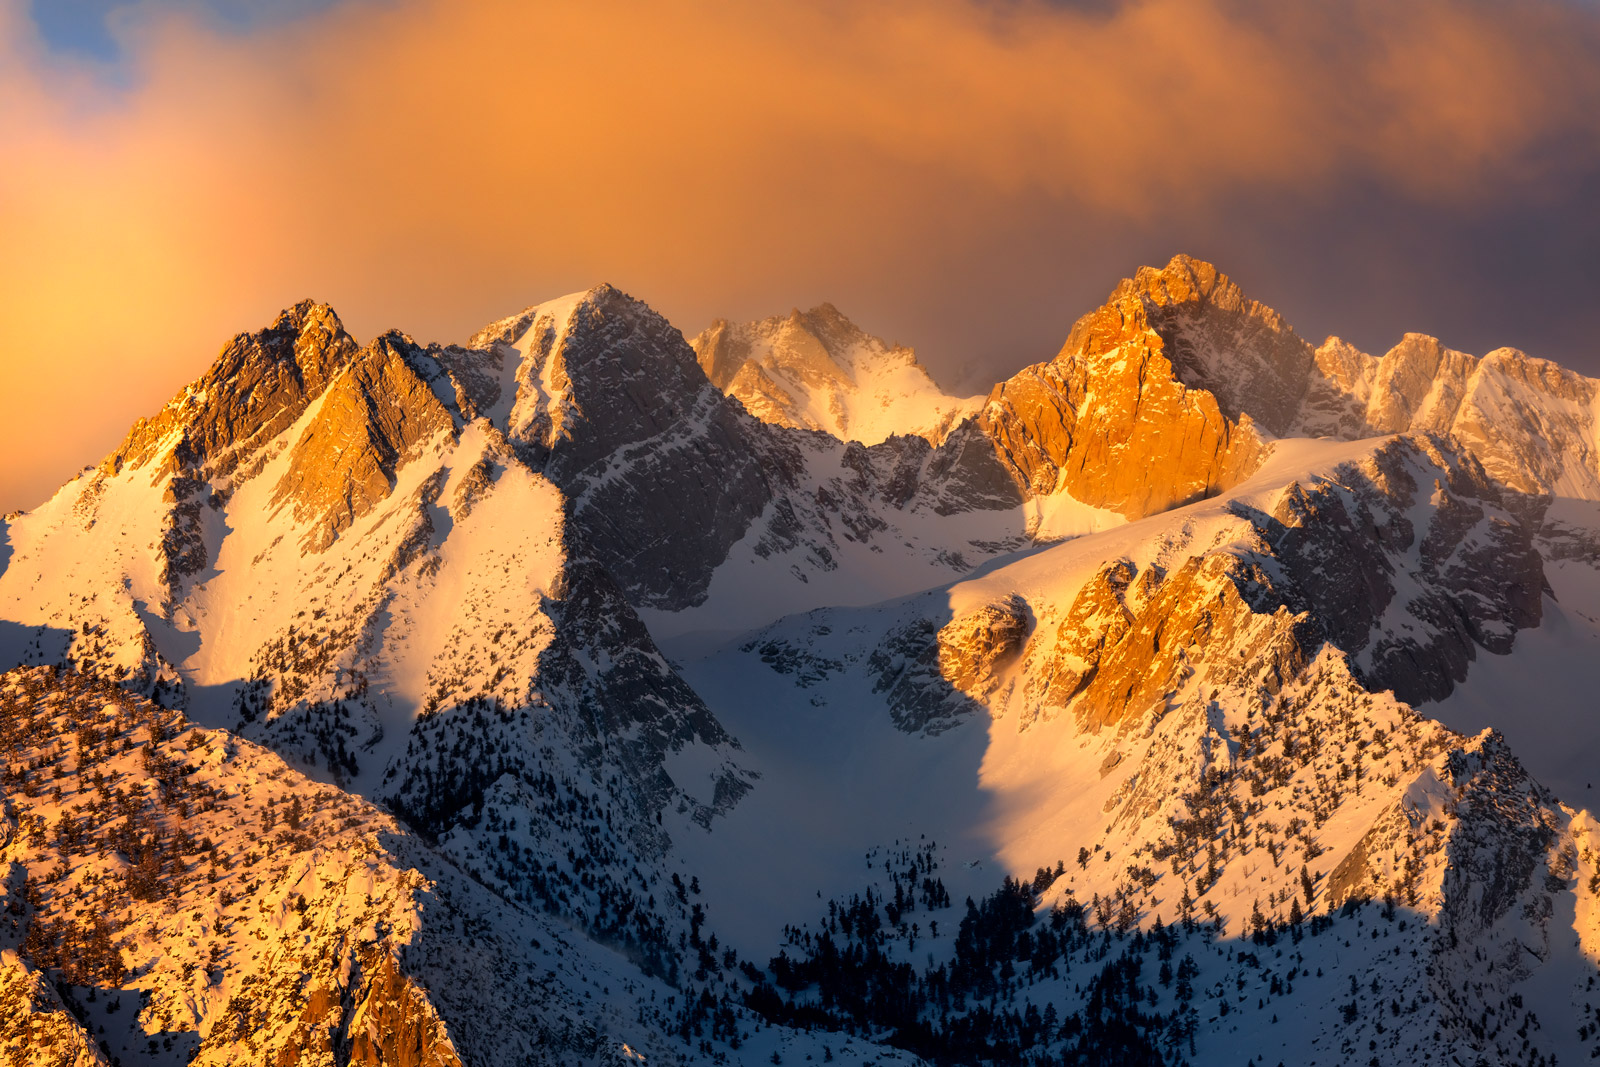 California, Eastern Sierra, Winter, Sunrise, Mountain, limited edition, photograph, fine art, landscape, photo